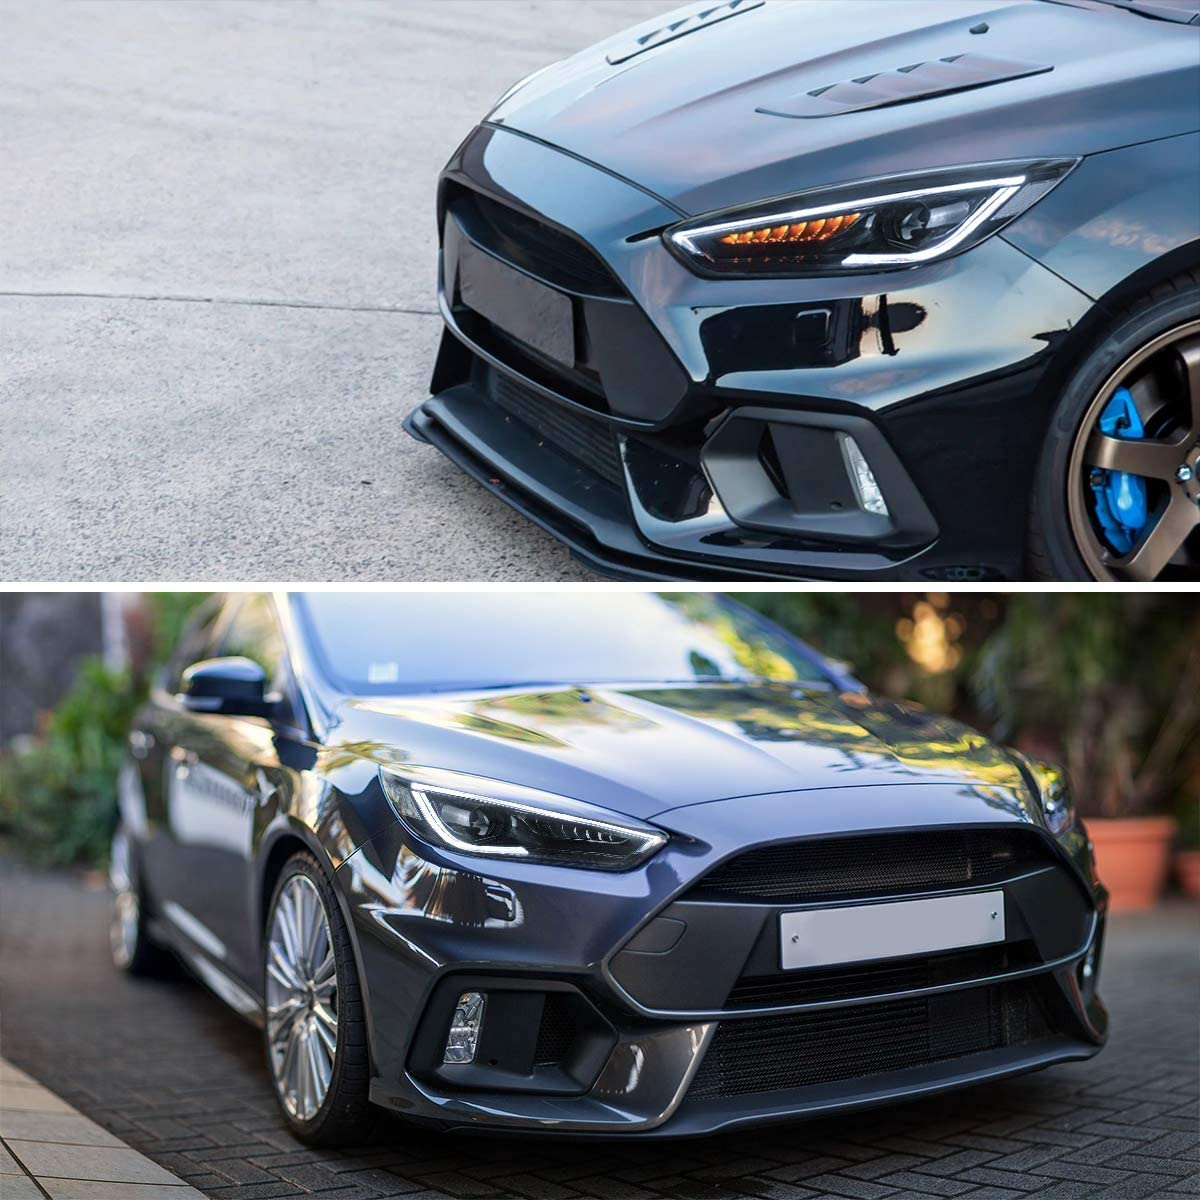 for High//Low Beam VLAND Projector LED Headlights Compatible with Focus 2015 2016 2017 2018 with Amber Sequential Black Housing D2H// D2S Bulbs Dual Beam Lens NOT included